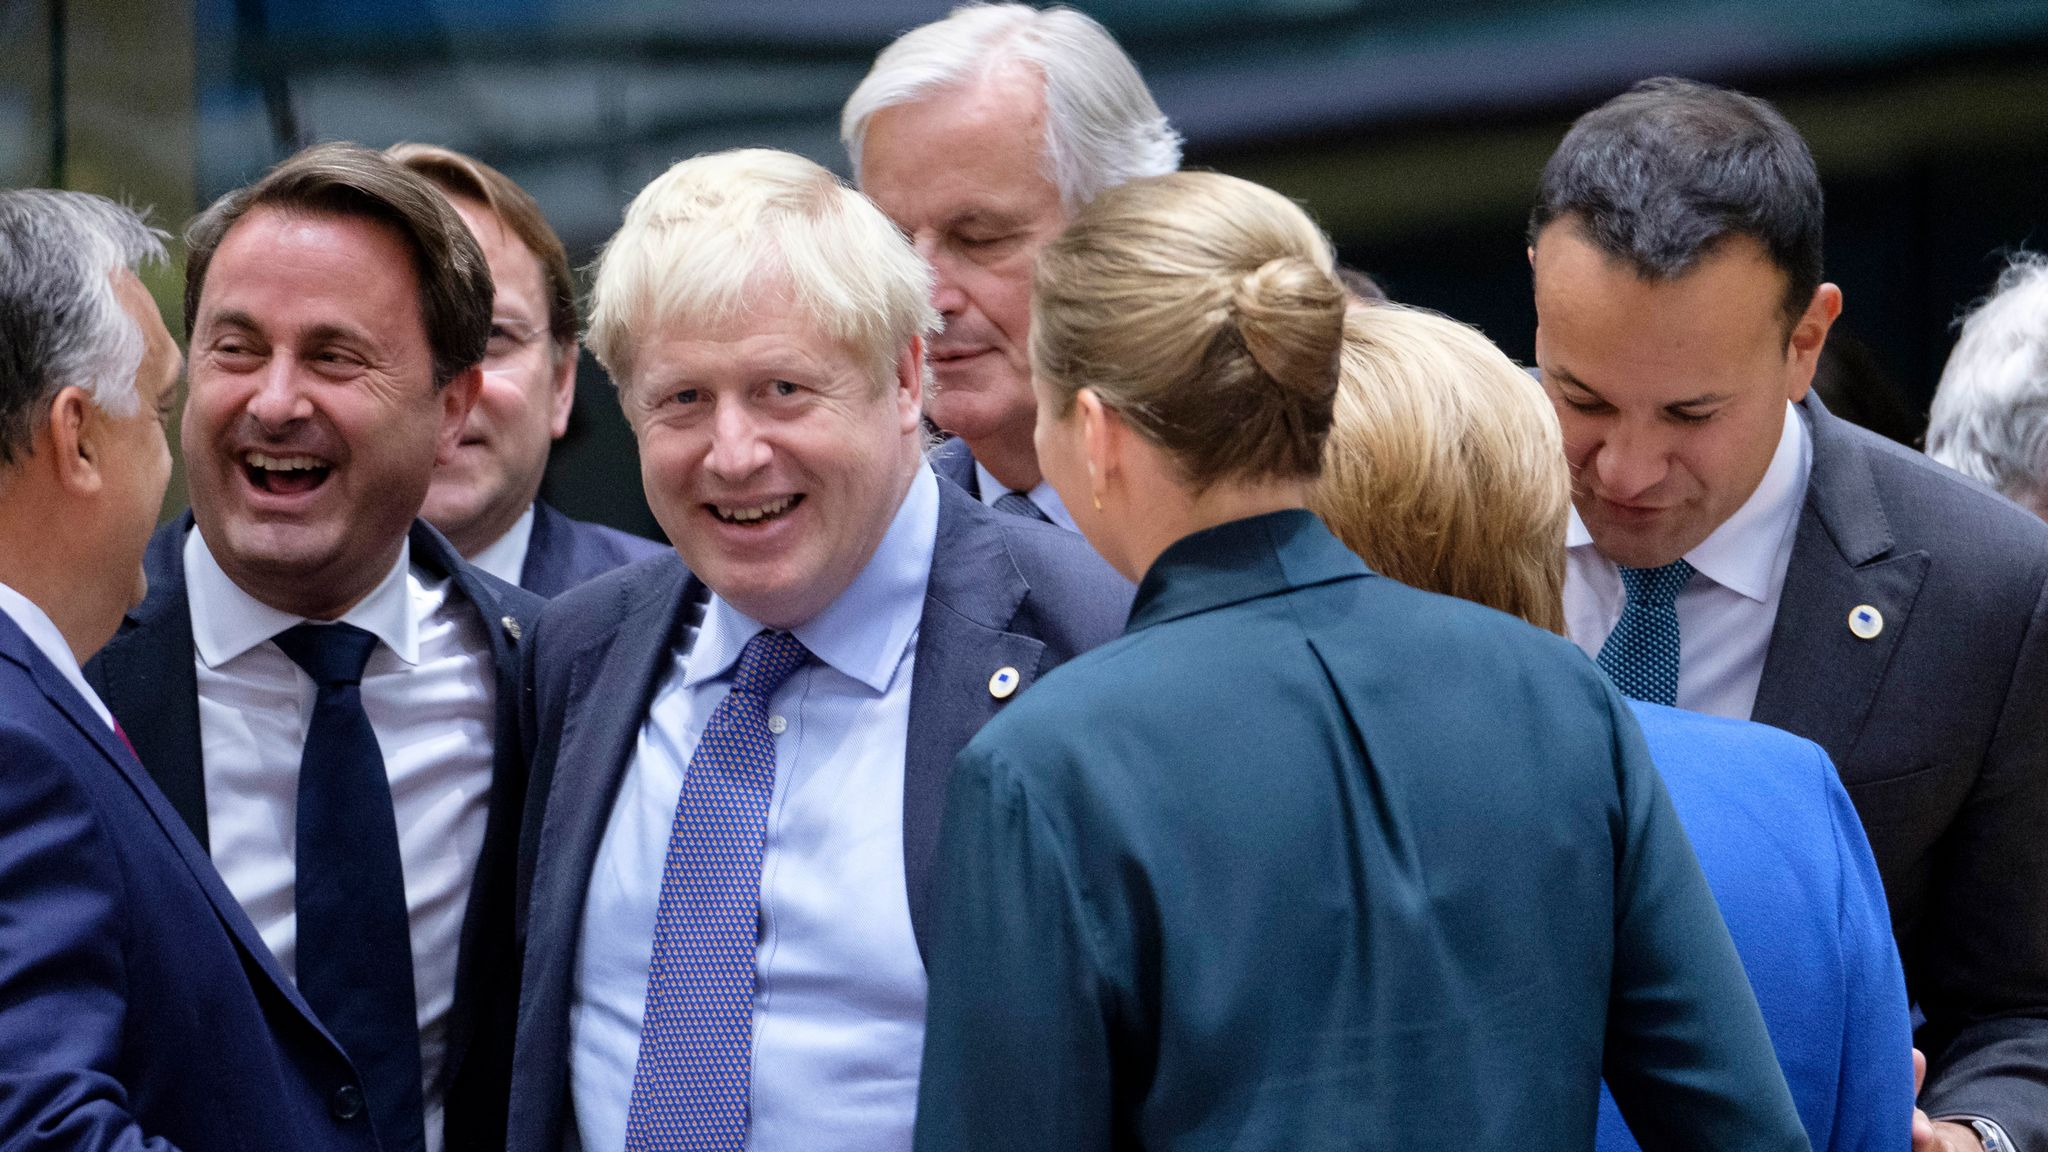 Brexit: The EU think they have called Boris Johnson's bluff with new deal